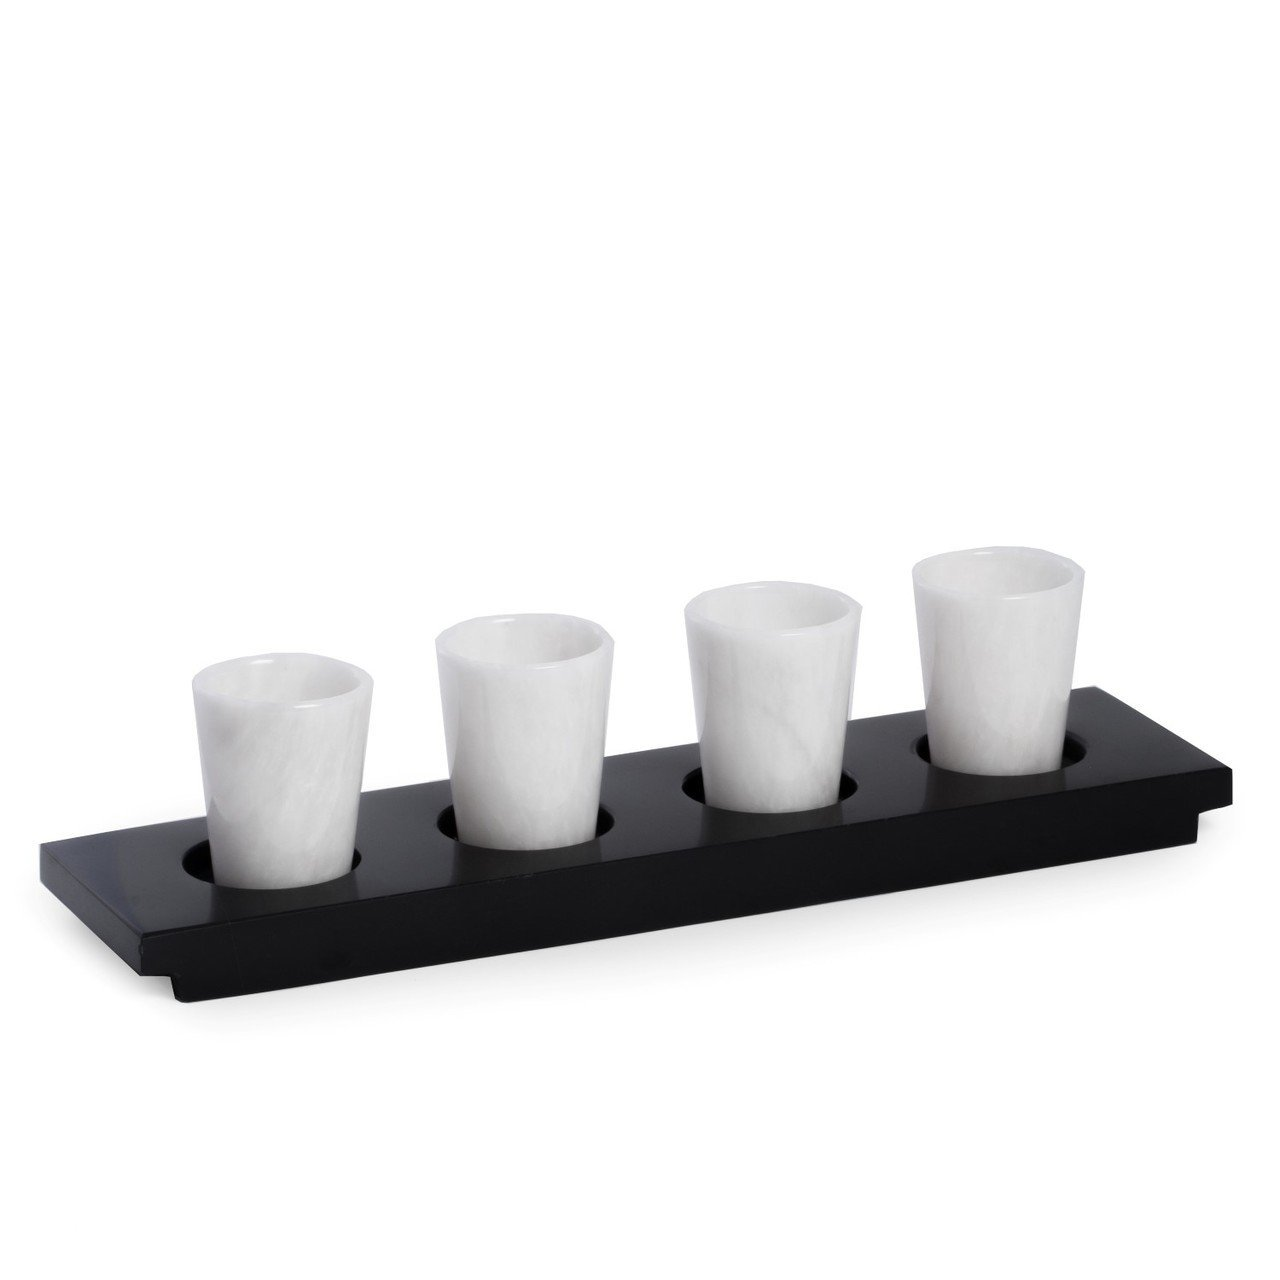 Hand Crafted 4 White Solid Marble Shot Glasses on Black Marble Serving Tray Set